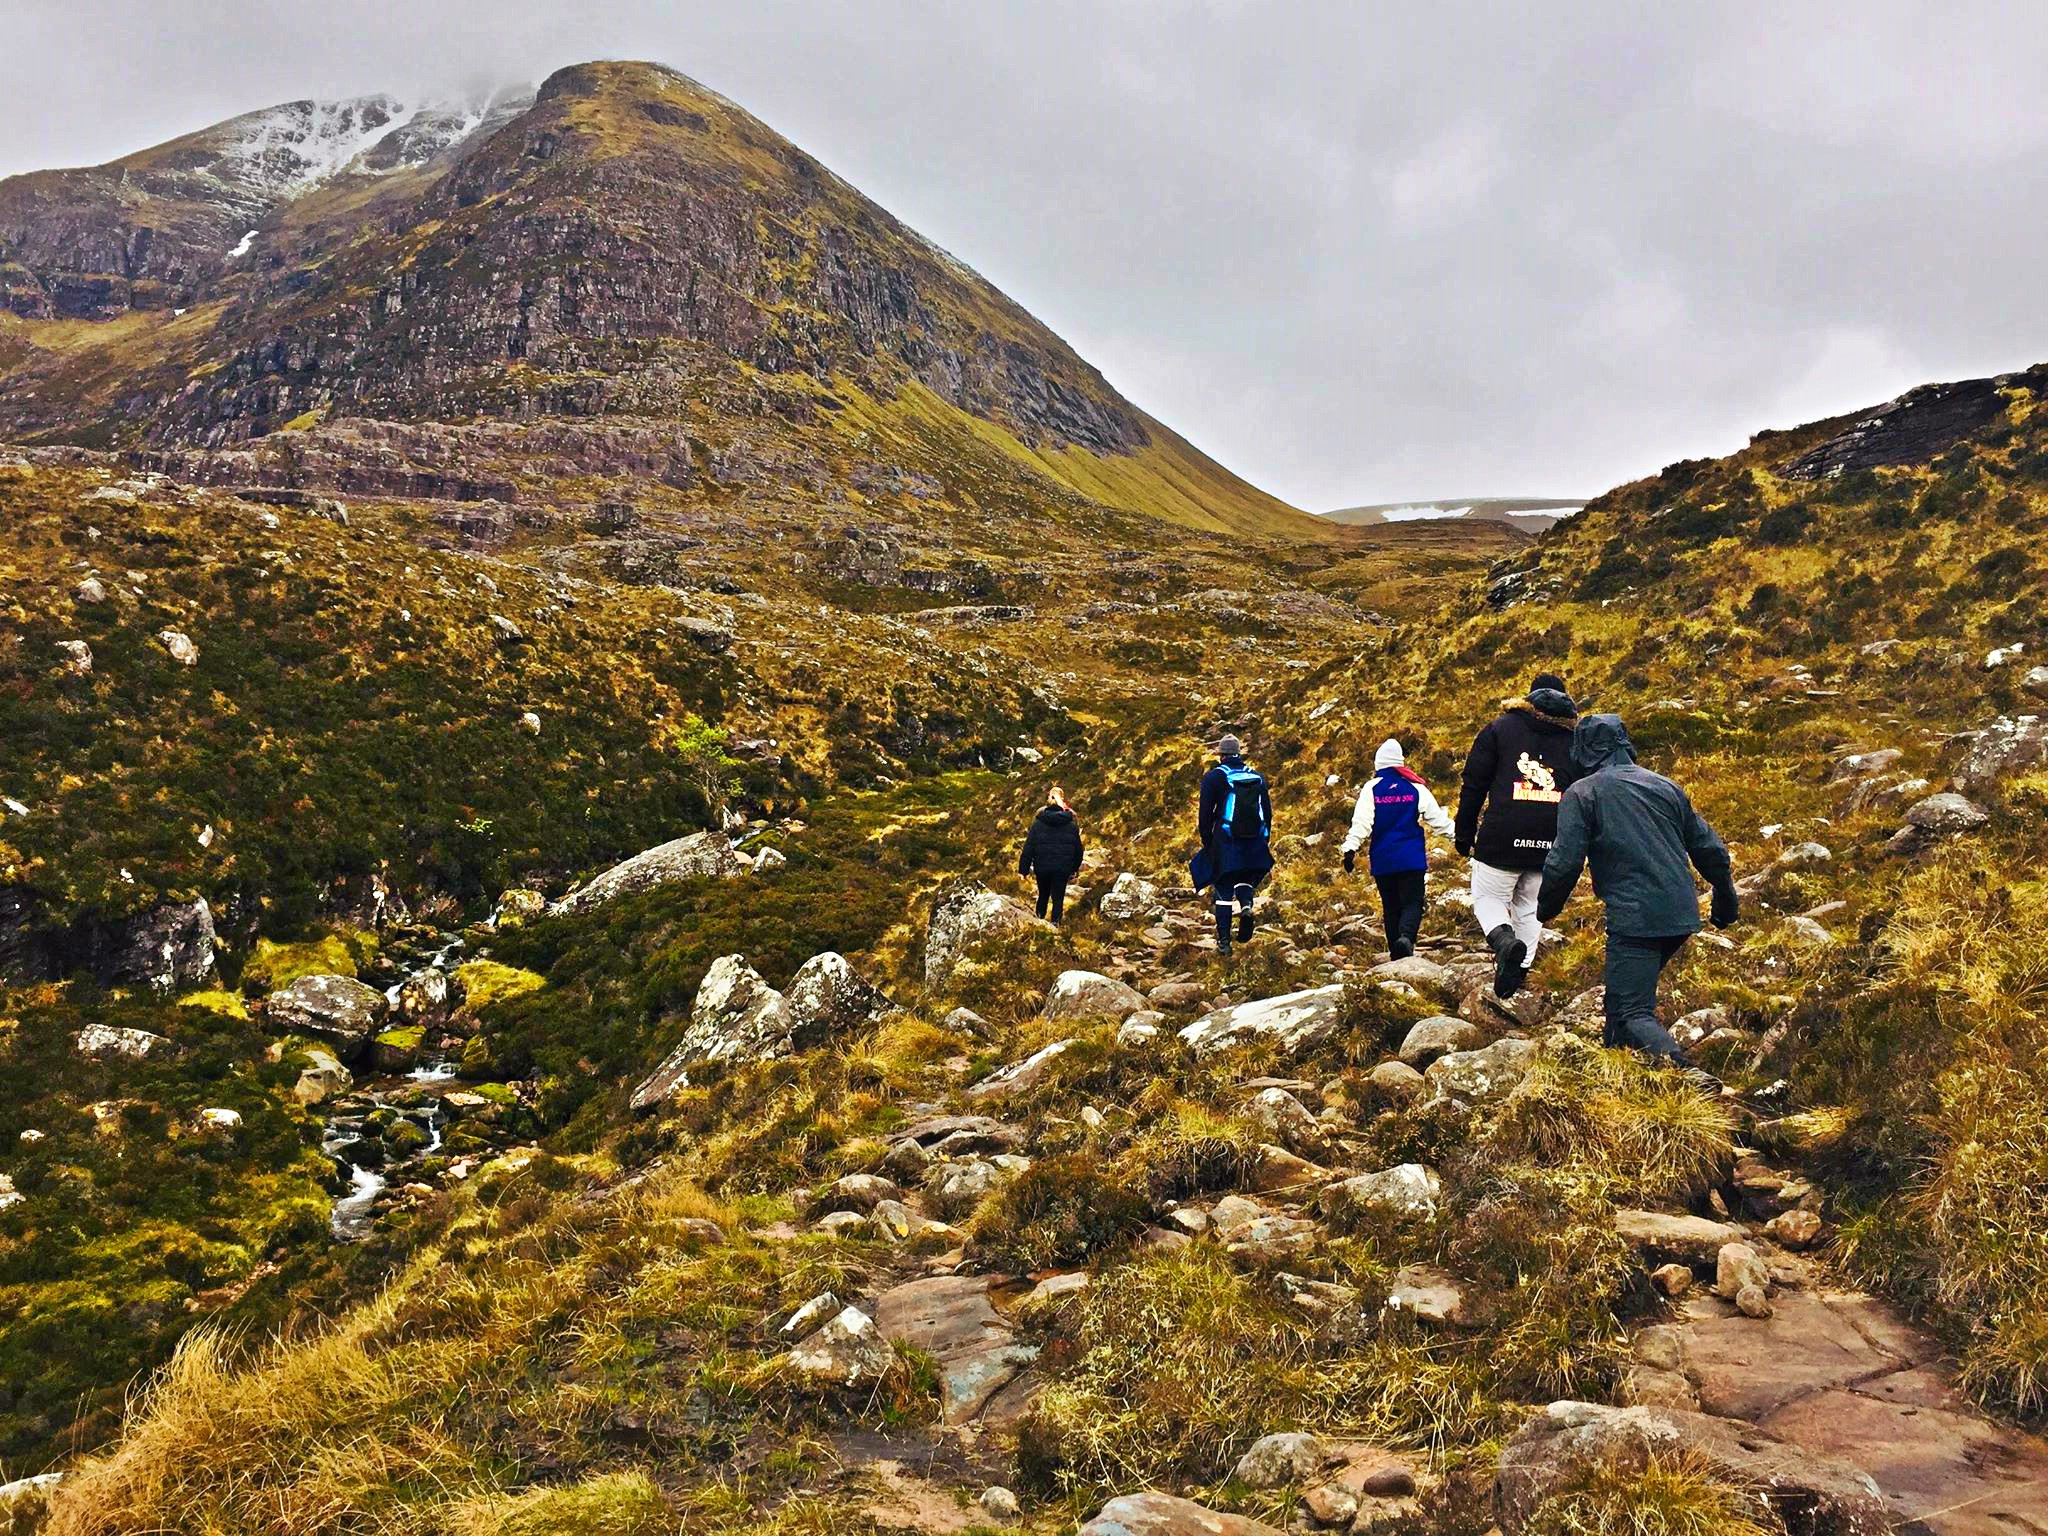 People hiking the An Teallach in Scotland